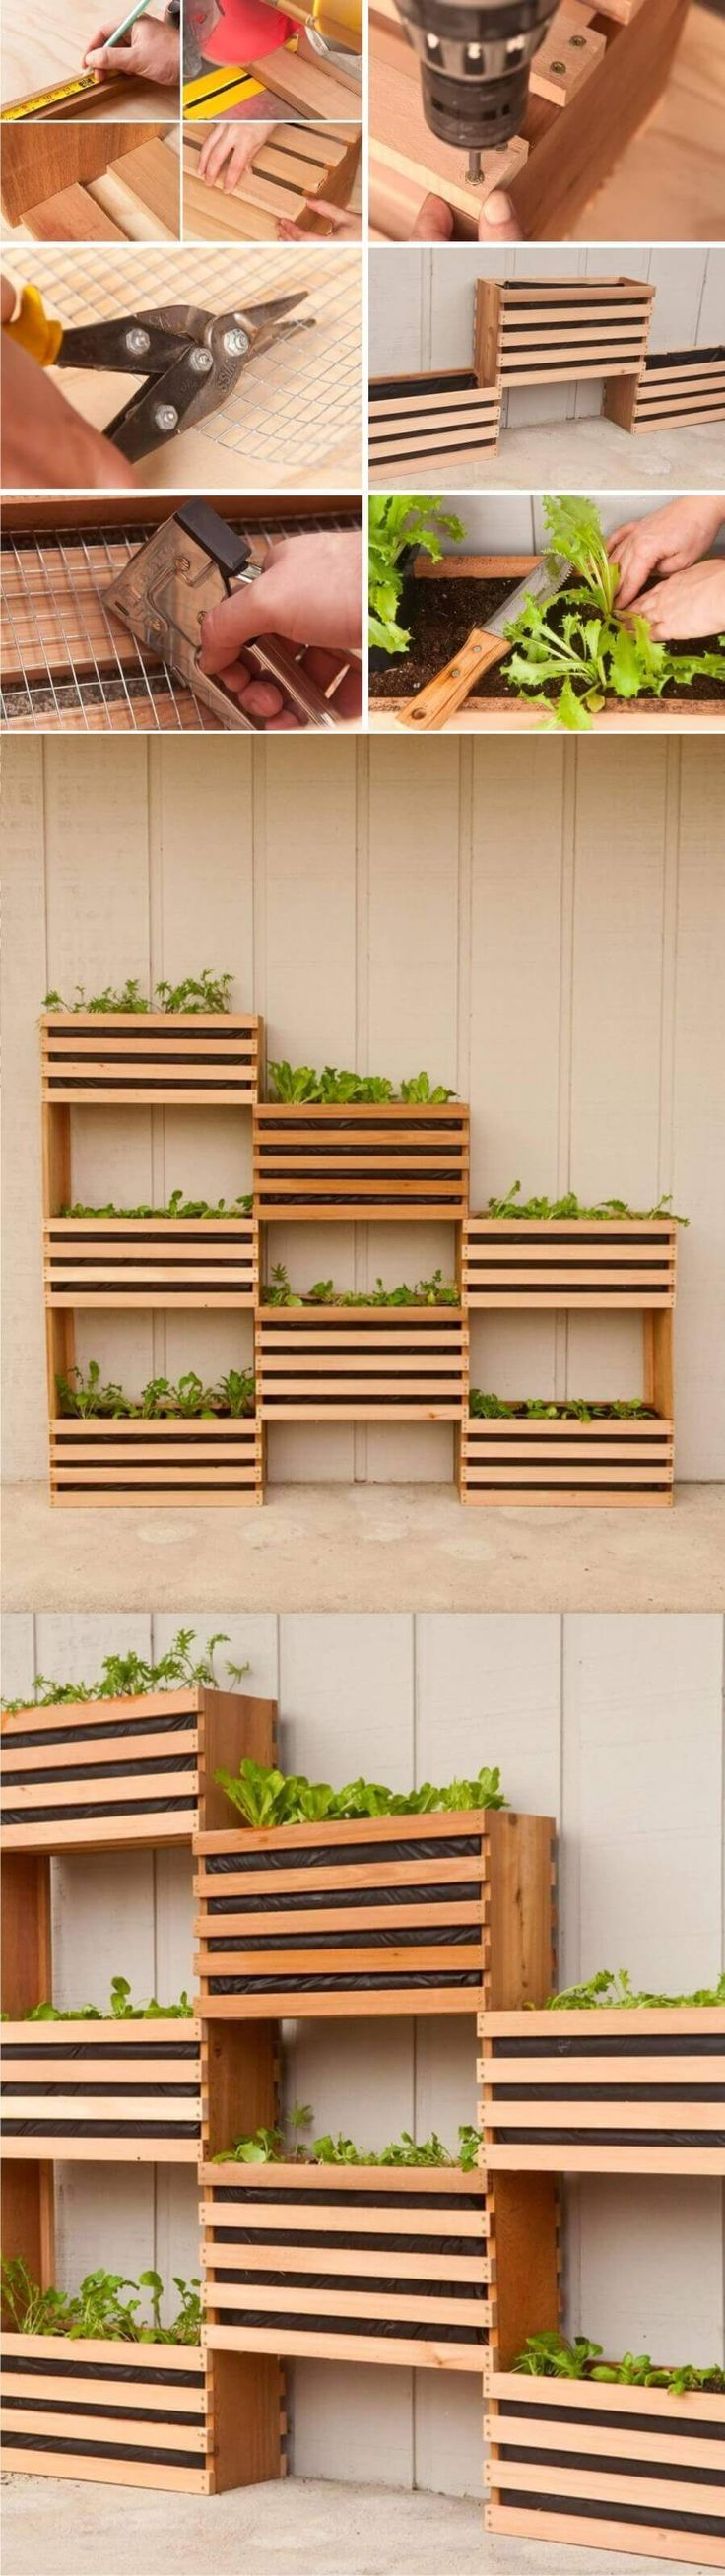 31+ Gorgeous Built-In Planter Box Ideas to Improve Your Outdoor Space